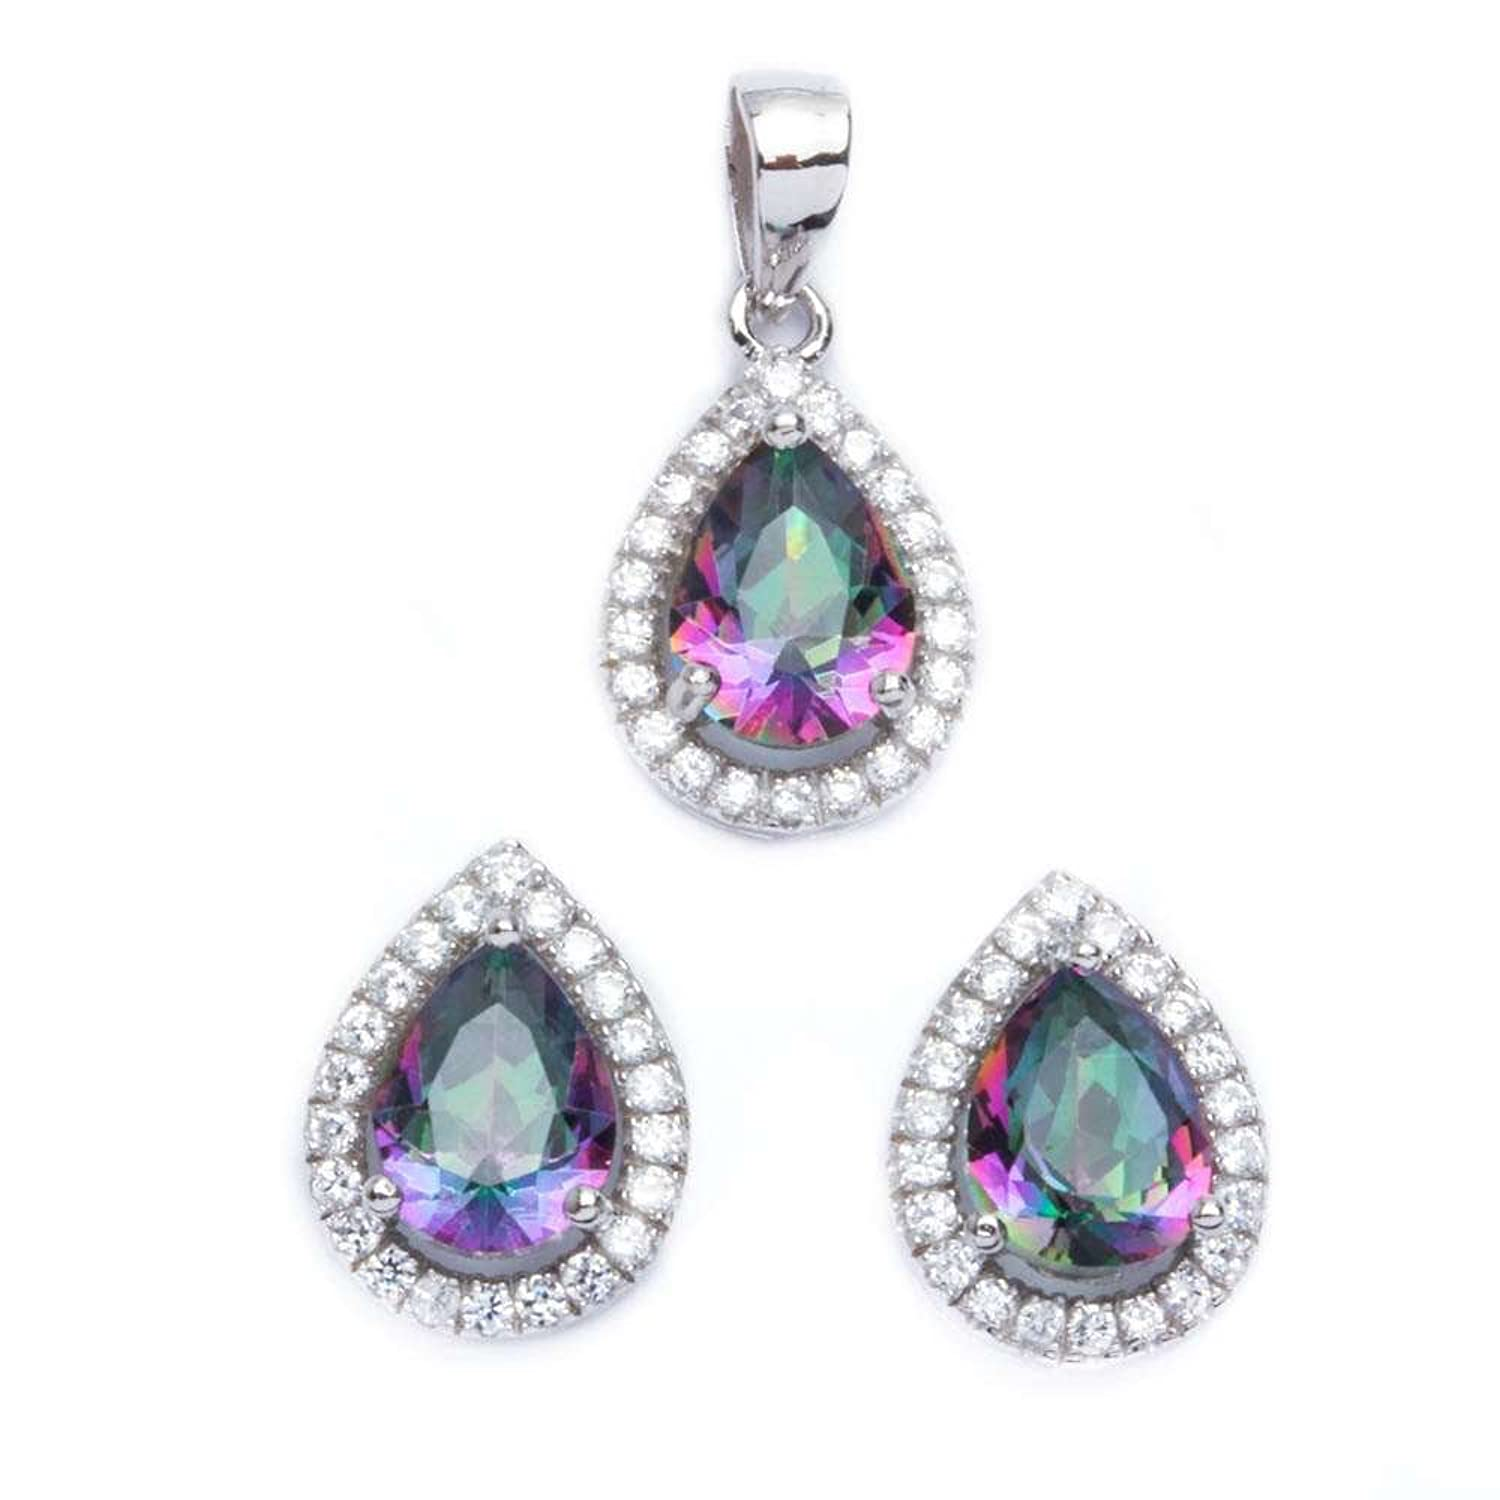 .925 Sterling Silver 2.50ct Pear Cut Rainbow Colored CZ & Cz Earring & Pendant Jewelry set